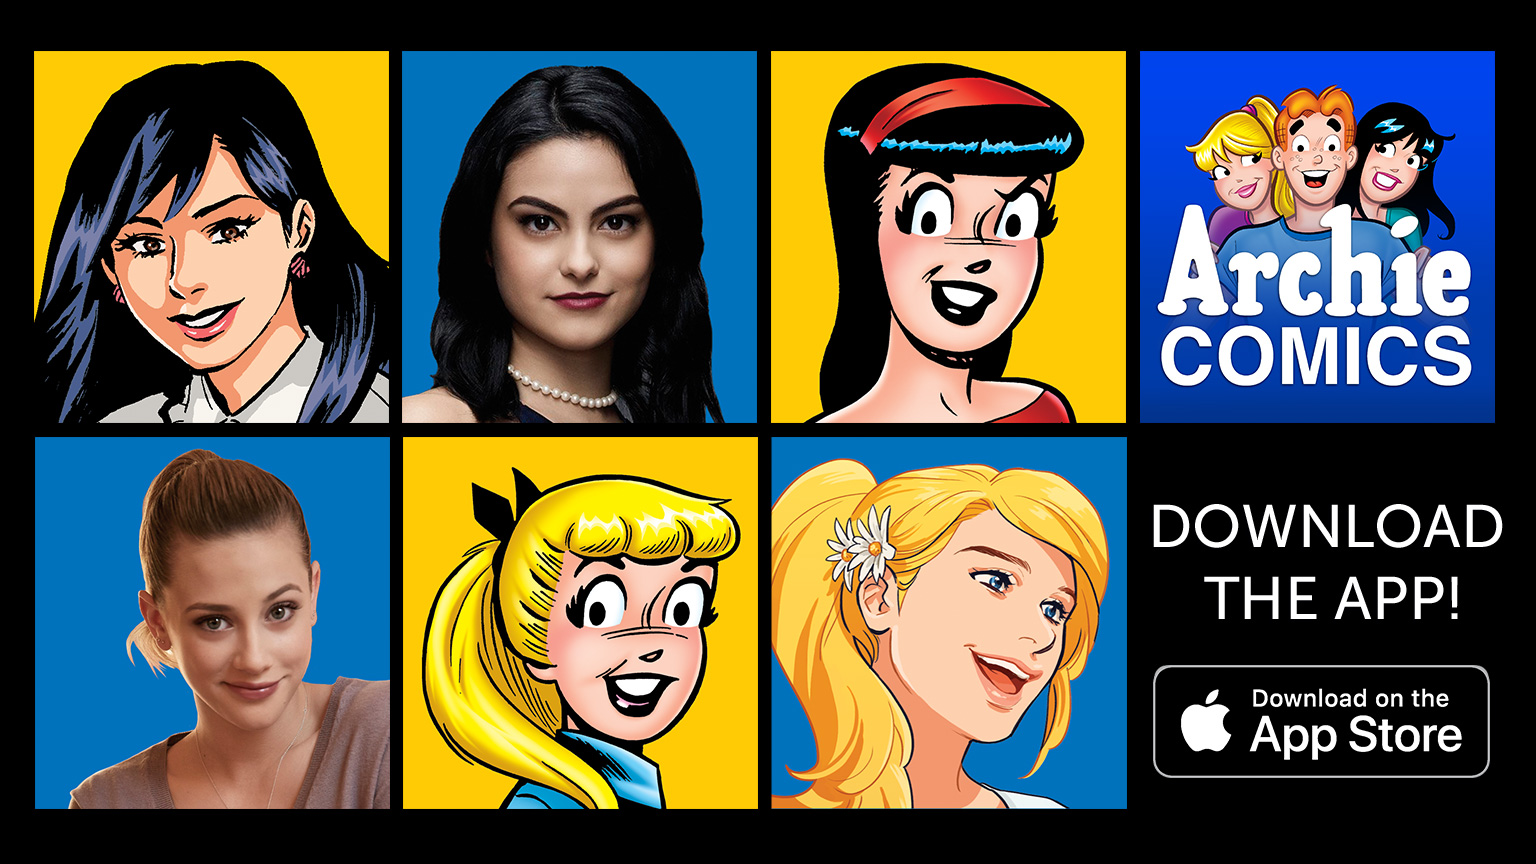 Cartoon Characters App : Riverdale on the cw archie comics